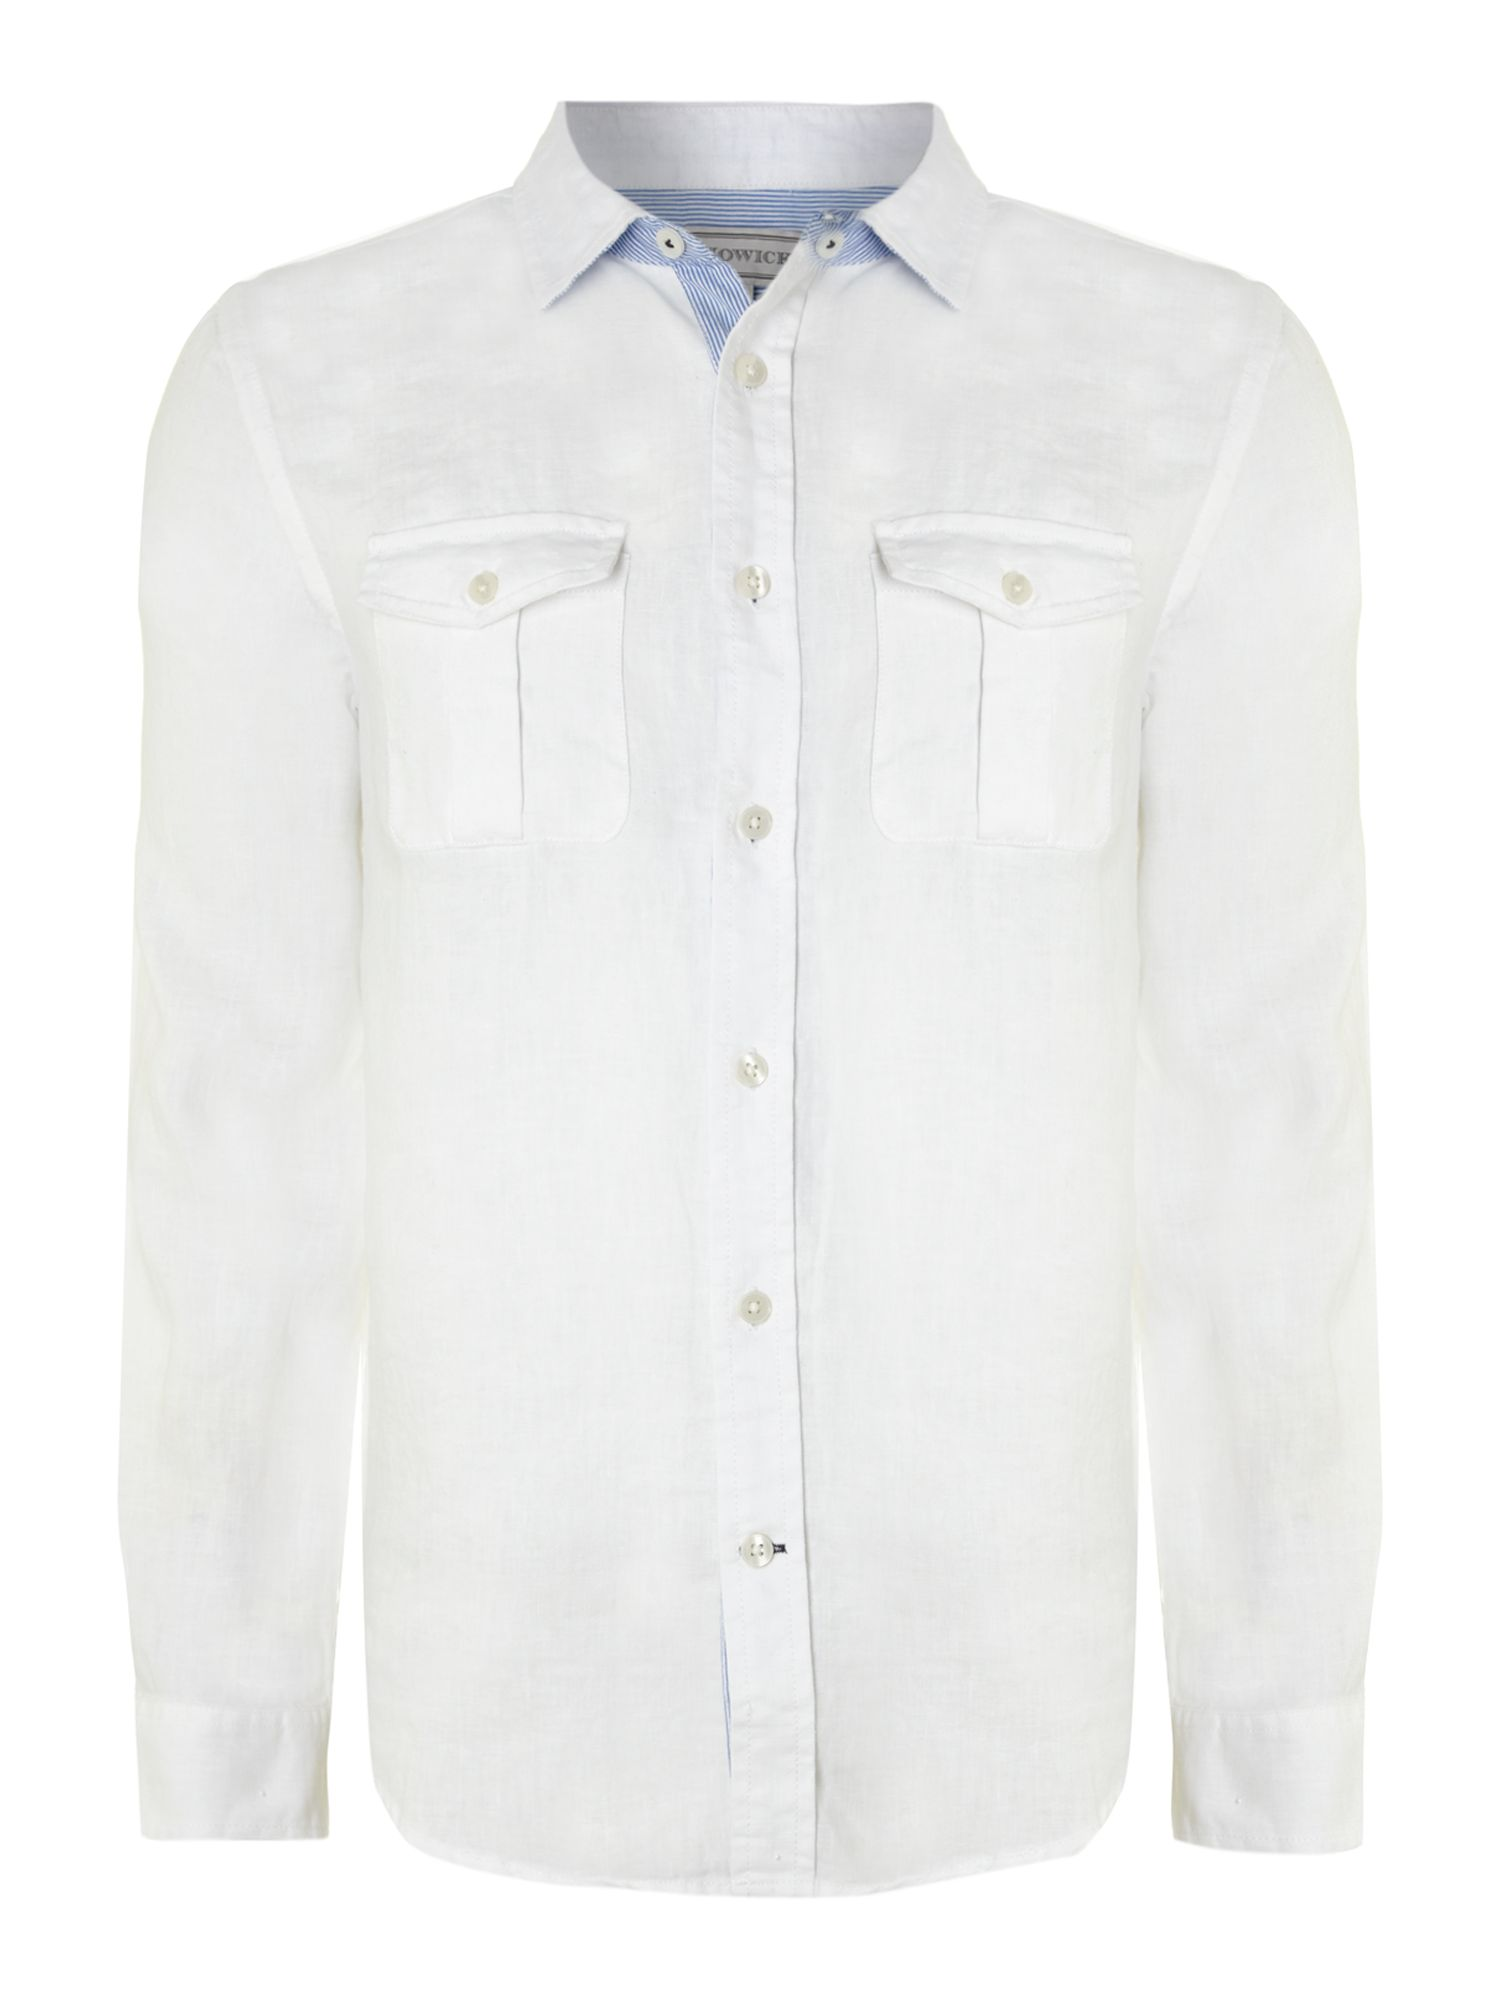 Long sleeved plain linen shirt